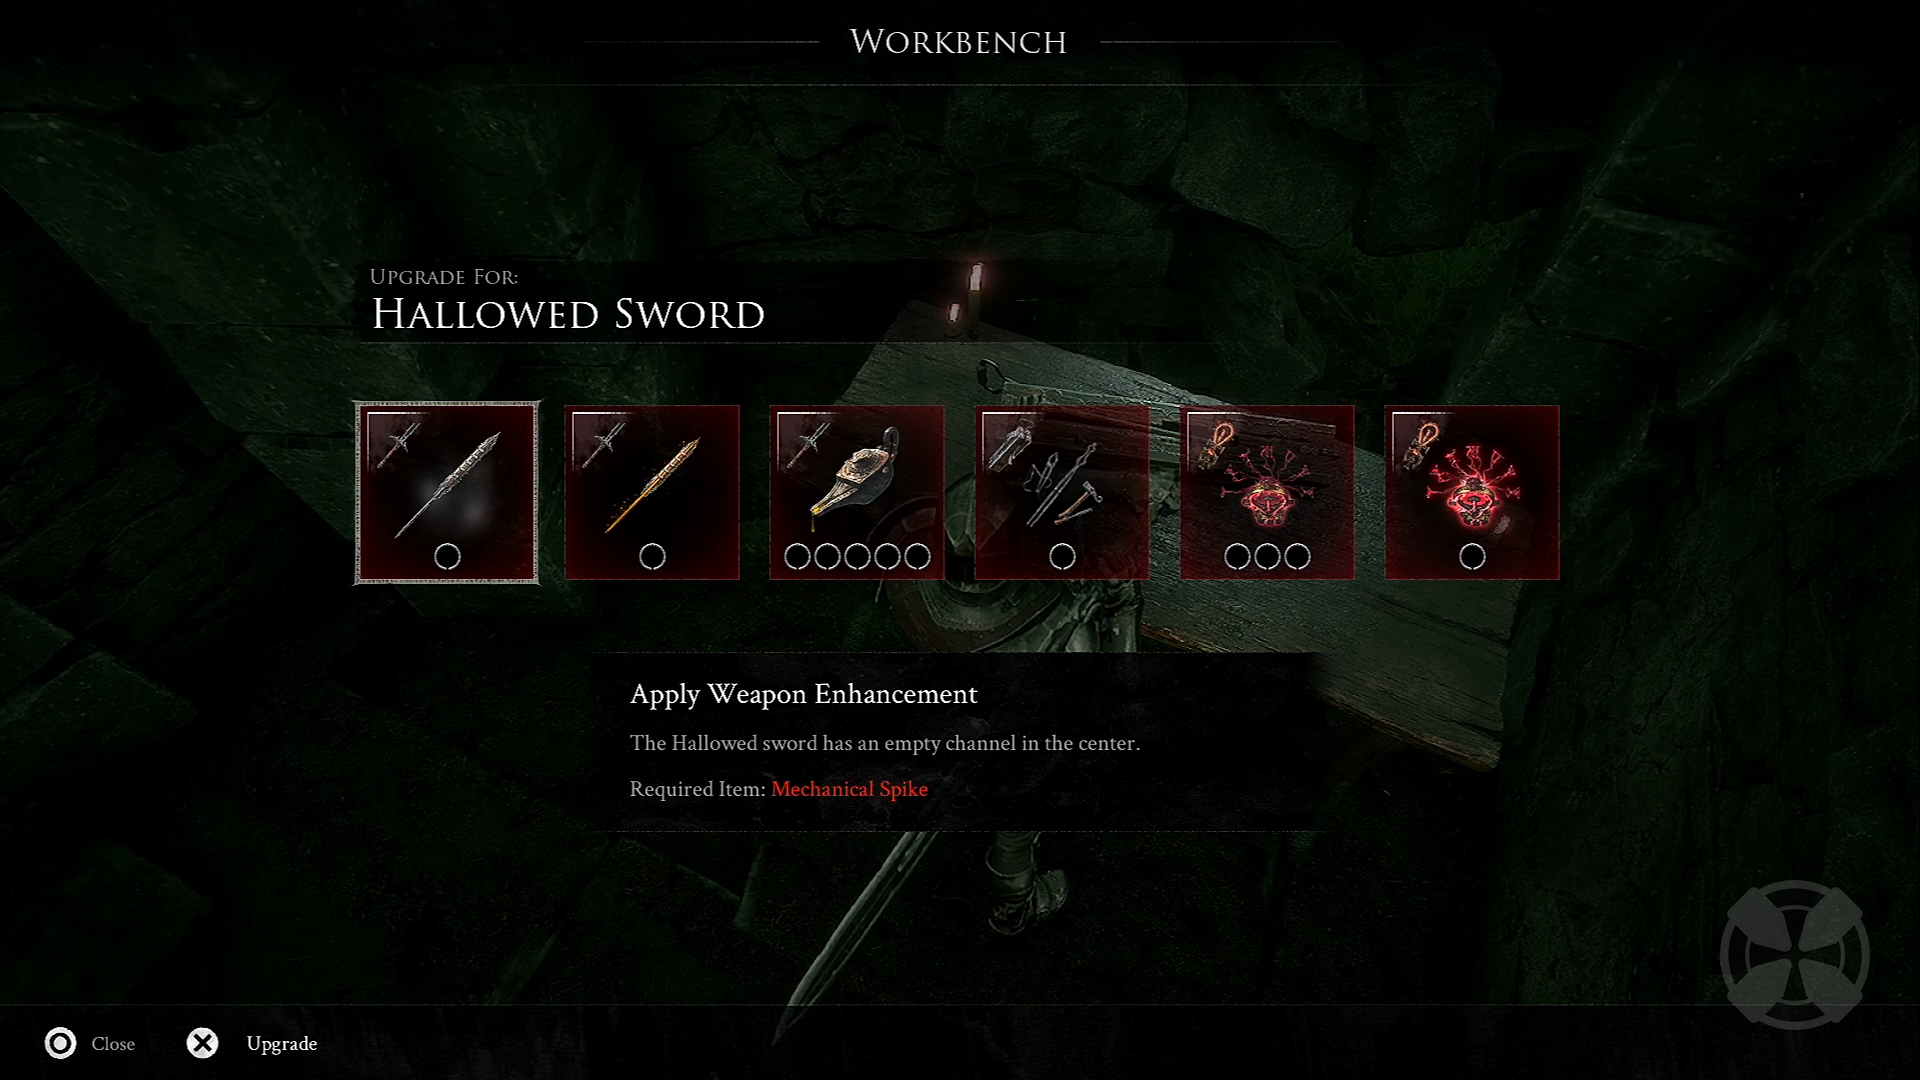 Image of weapon upgrading in Mortal Shell.